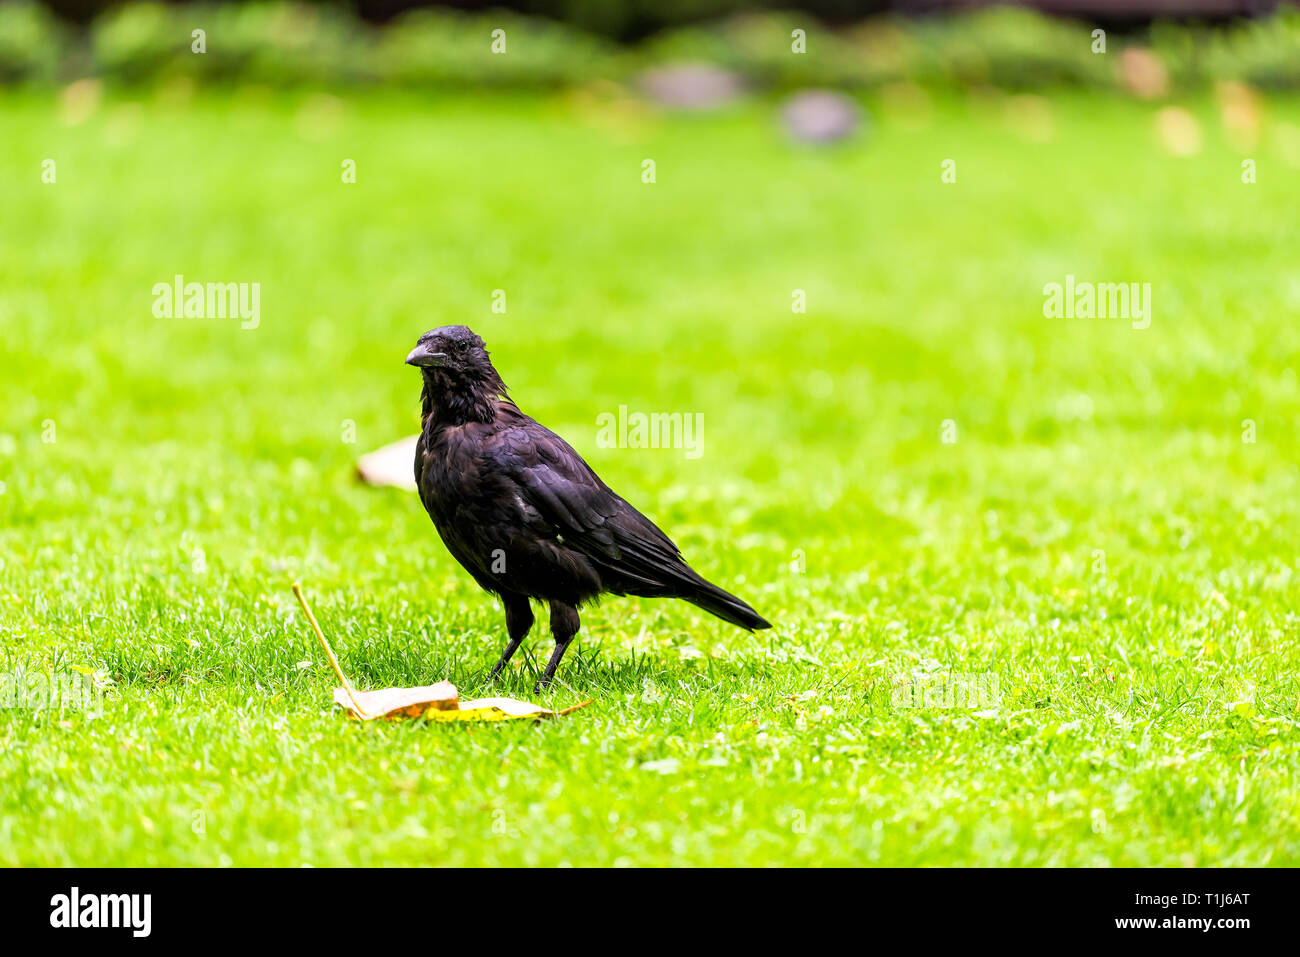 Crow in London, UK standing on lawn grass by leaves autumn foliage closeup of black raven bird - Stock Image